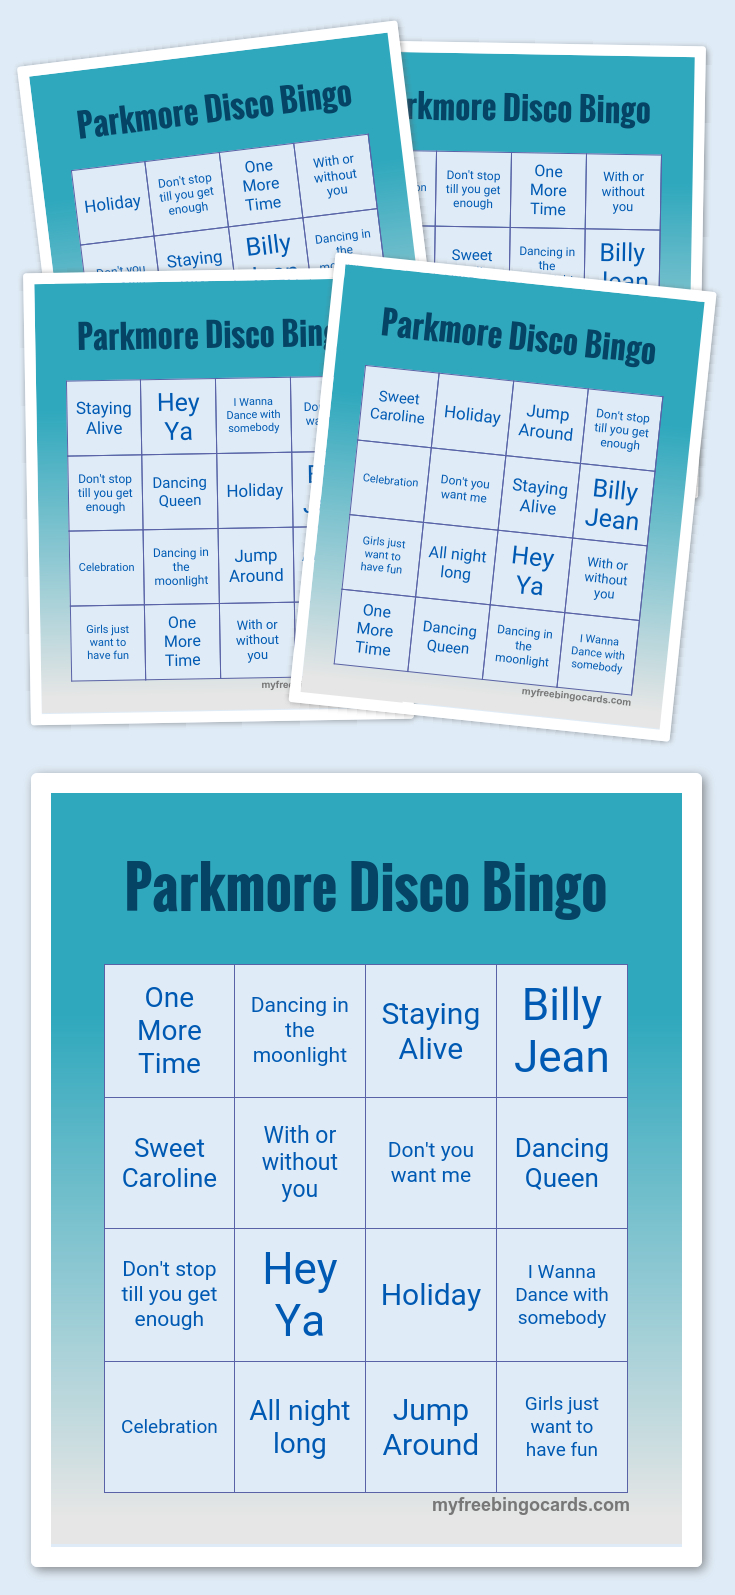 Parkmore Disco Bingo | Conference Call Bingo, Bingo Cards